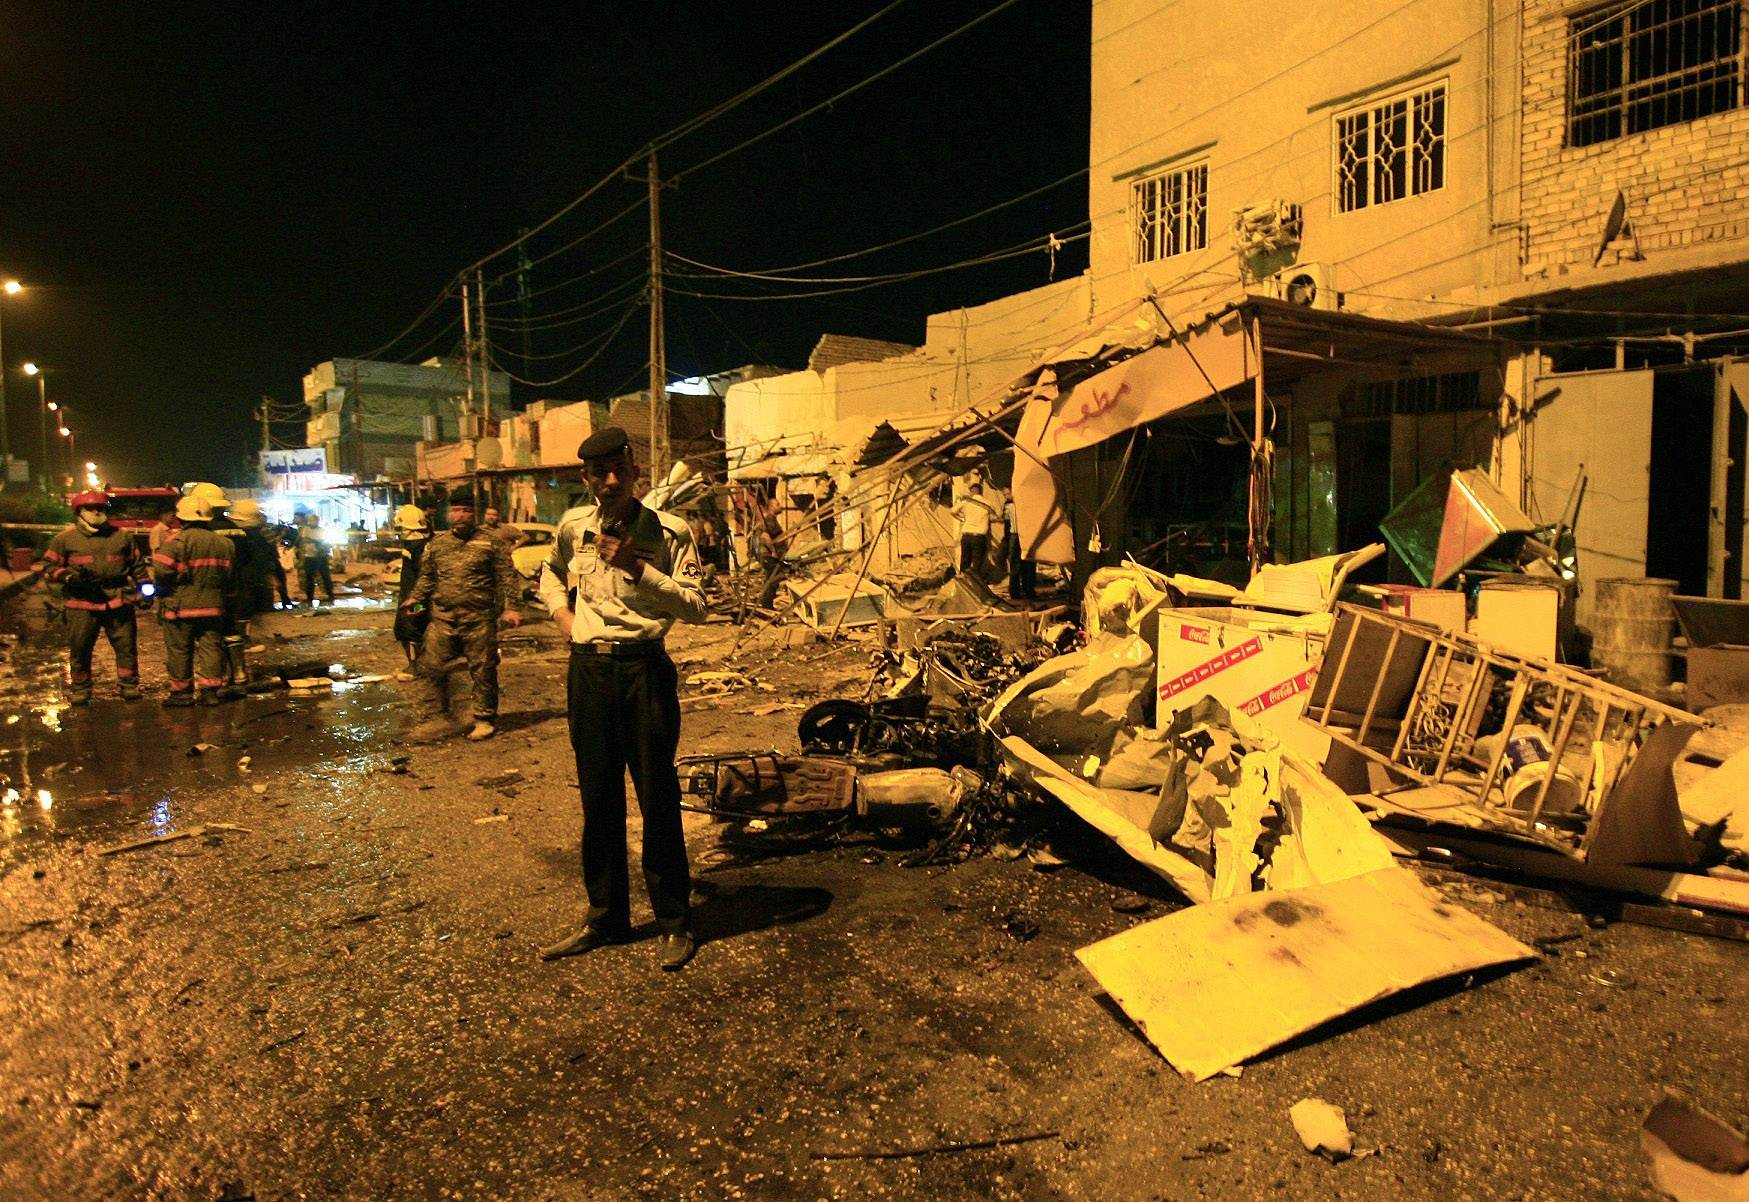 Iraqi security forces inspect the site of a car bomb attack Wednesday in Hillah, about 60 miles south of Baghdad. Iraq is experiencing its worst surge in violence since the sectarian bloodletting that nearly tore the country apart in 2006 and 2007.